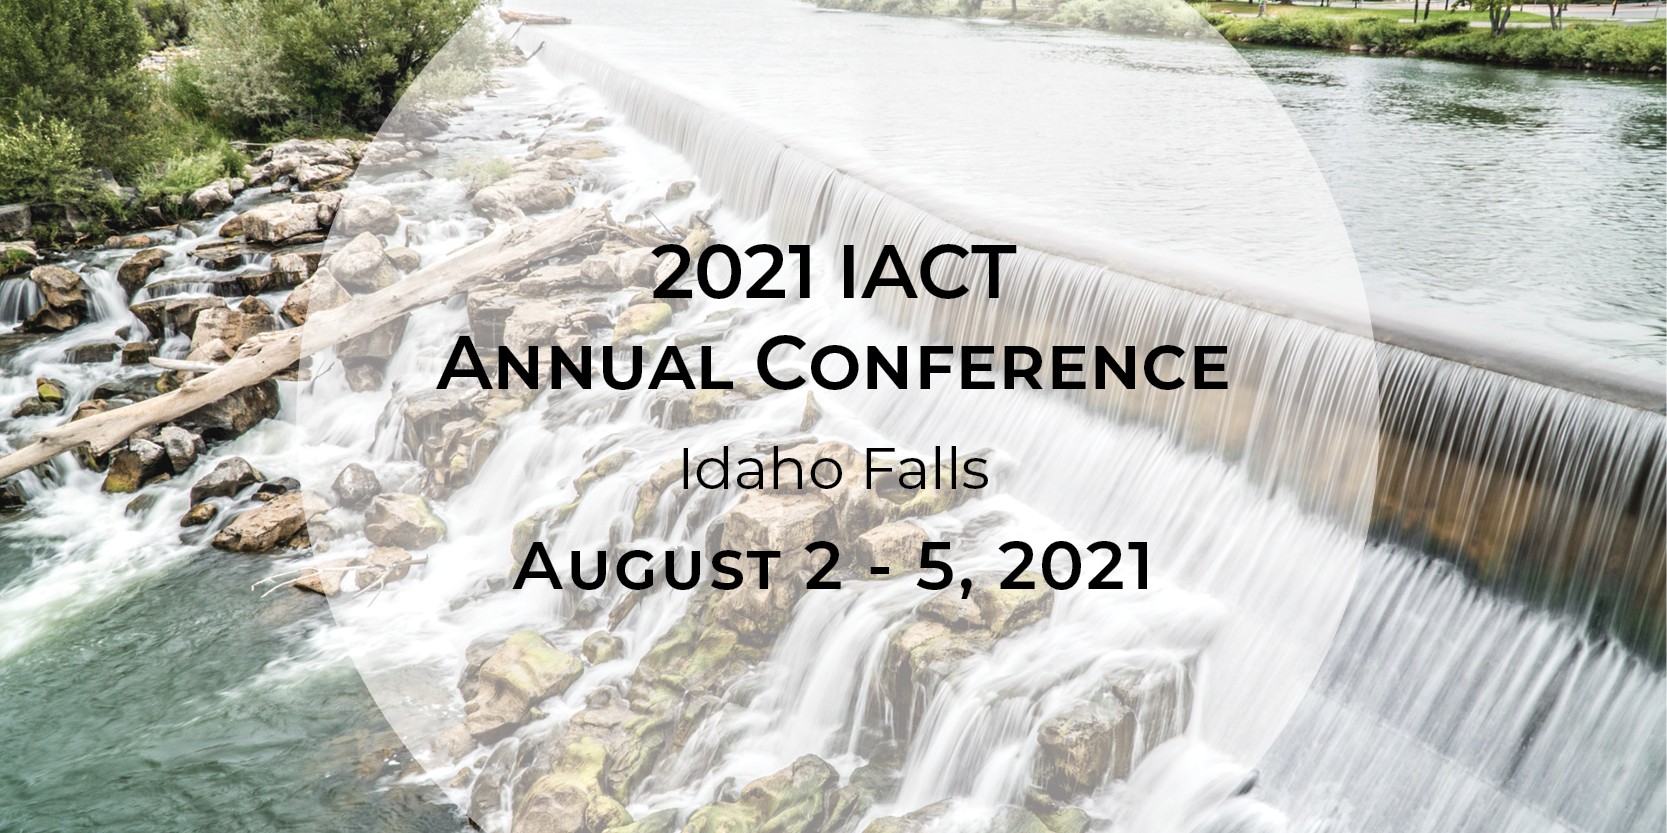 2021 IACT Annual Conference